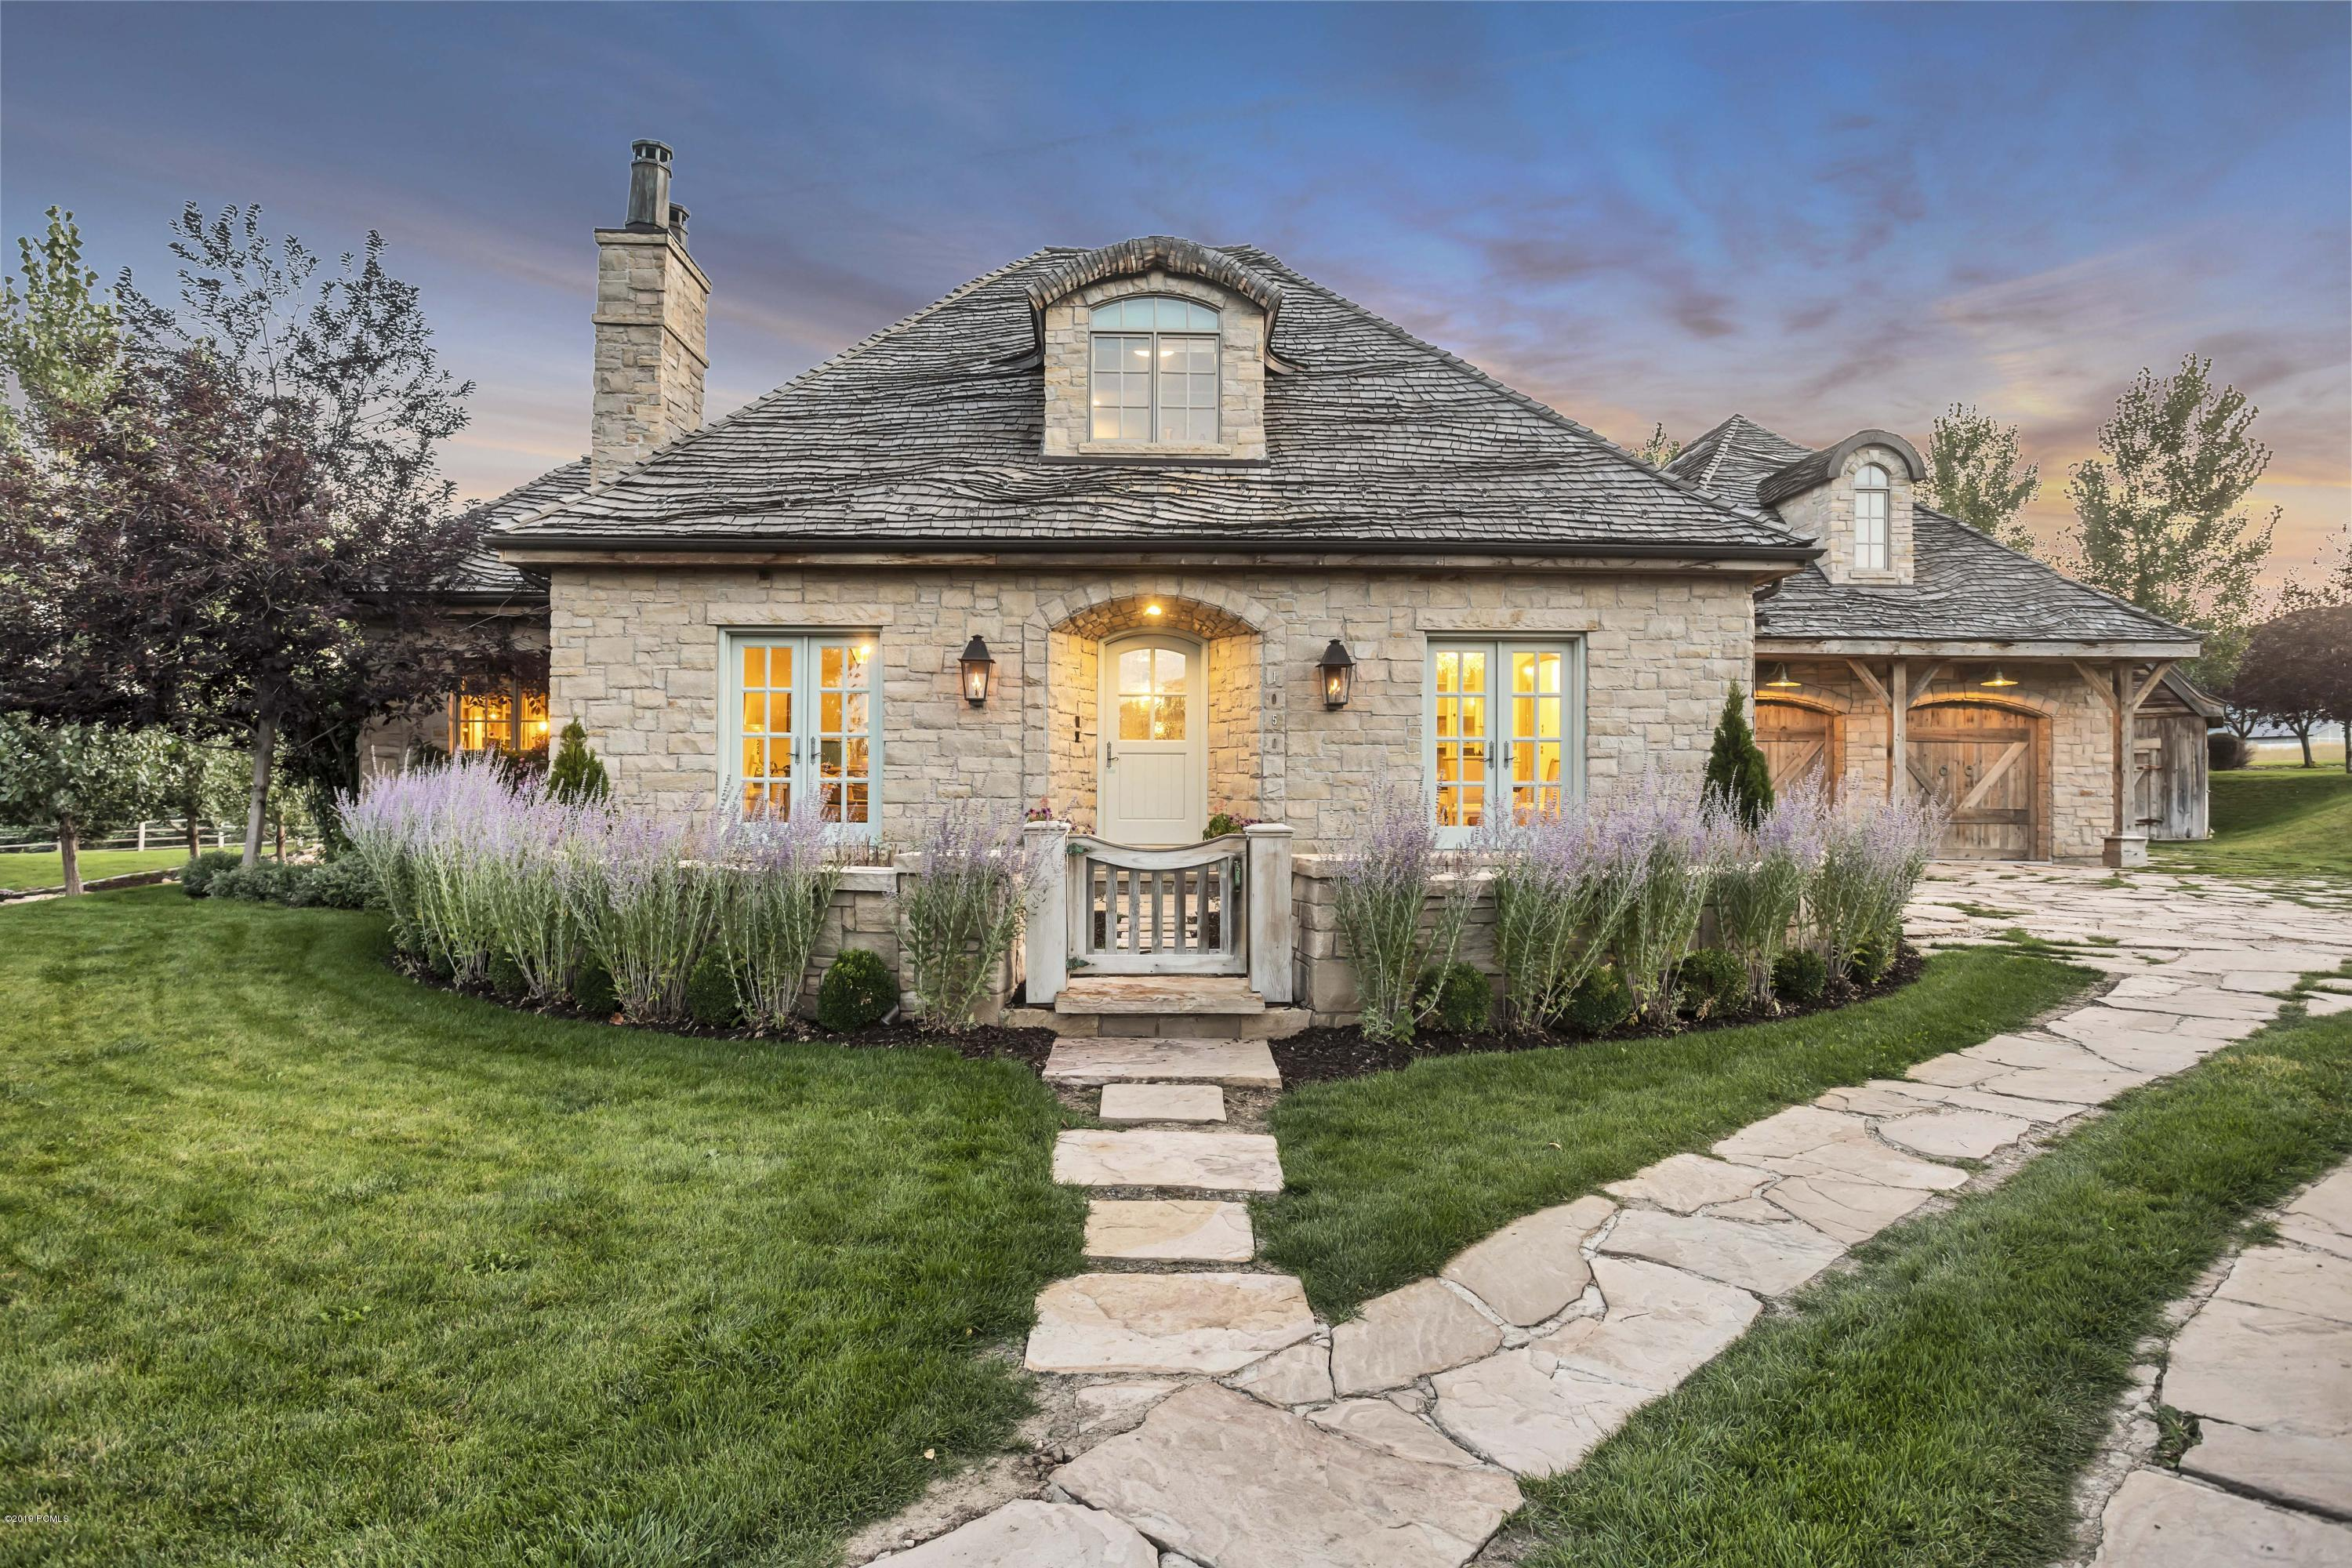 1050 Mont Blanc Court, Midway, Utah 84049, 5 Bedrooms Bedrooms, ,5 BathroomsBathrooms,Single Family,For Sale,Mont Blanc,20190109112430415765000000